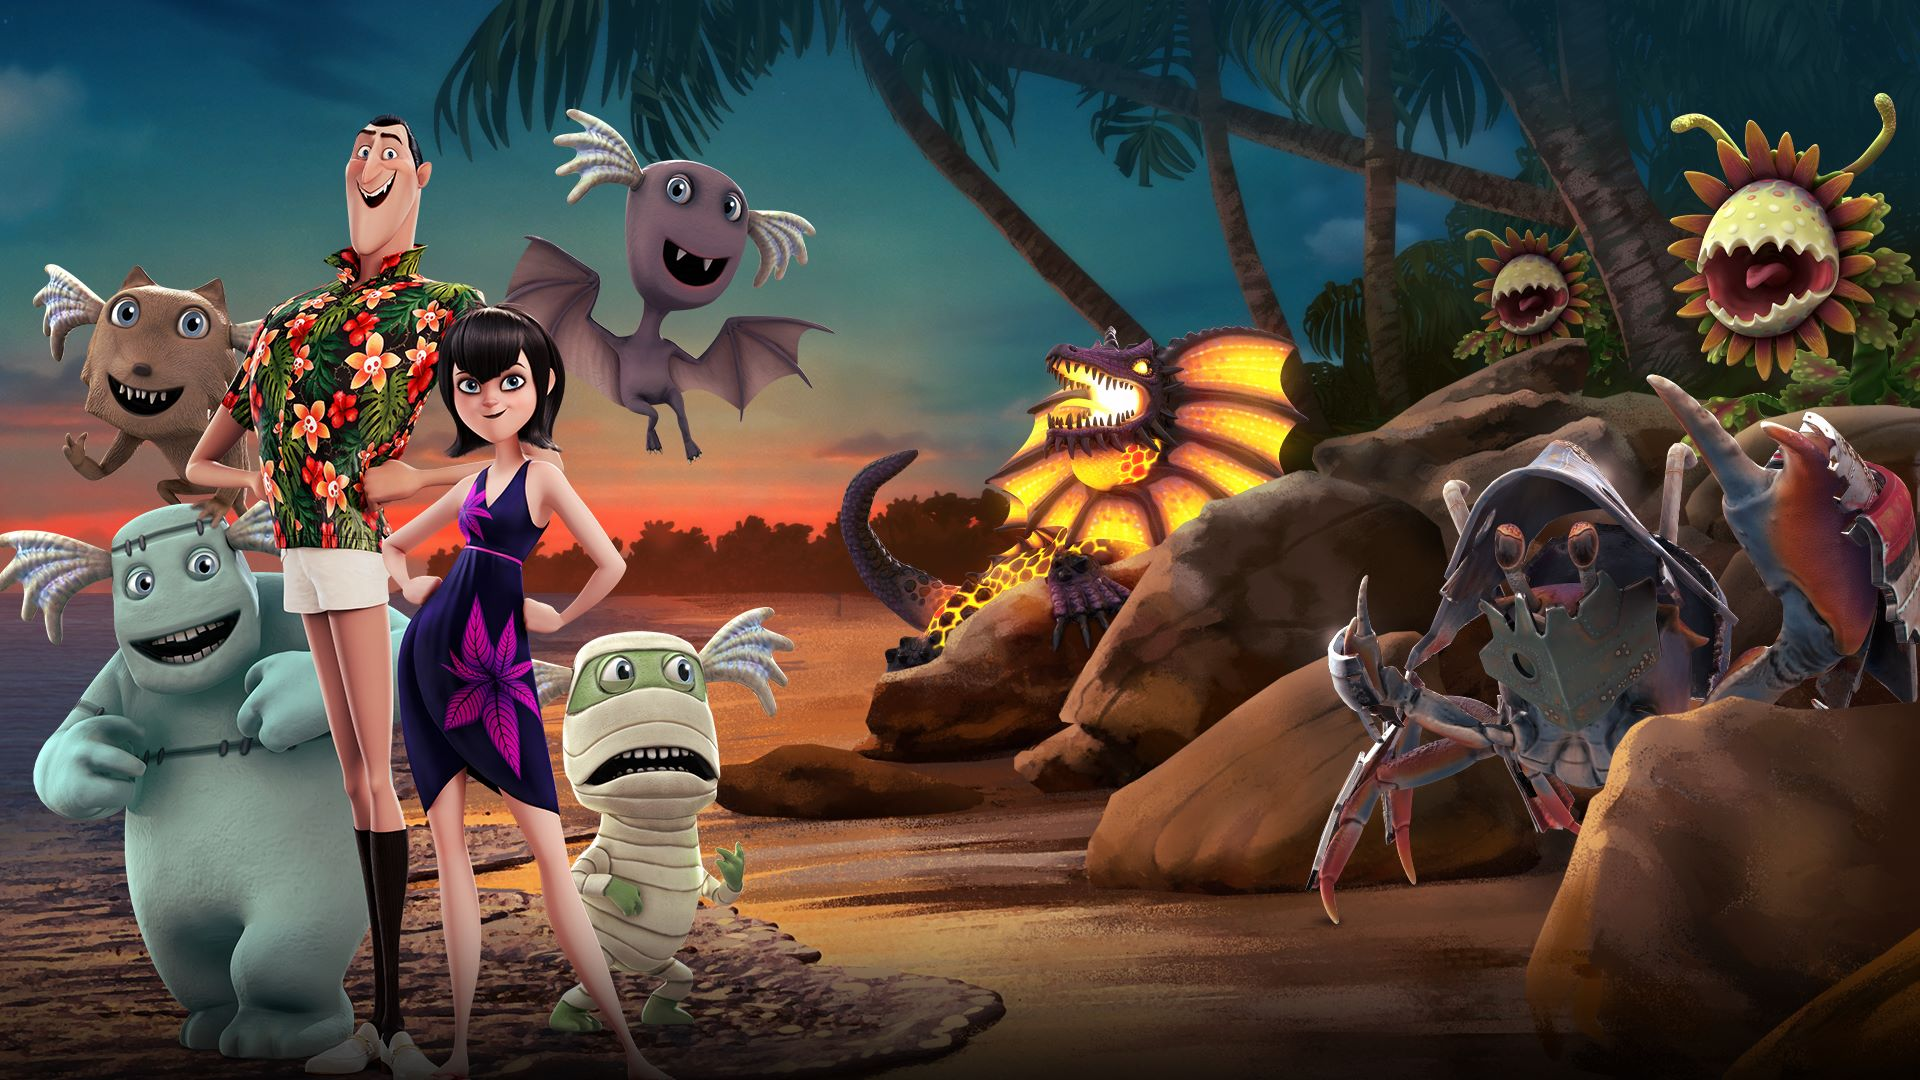 hotel transylvania 3 monsters overboard hotel transylvania 3 monsters overboard Hotel Transylvania 3 Monsters Overboard Hotel Transylvania 3 Monsters Overboard